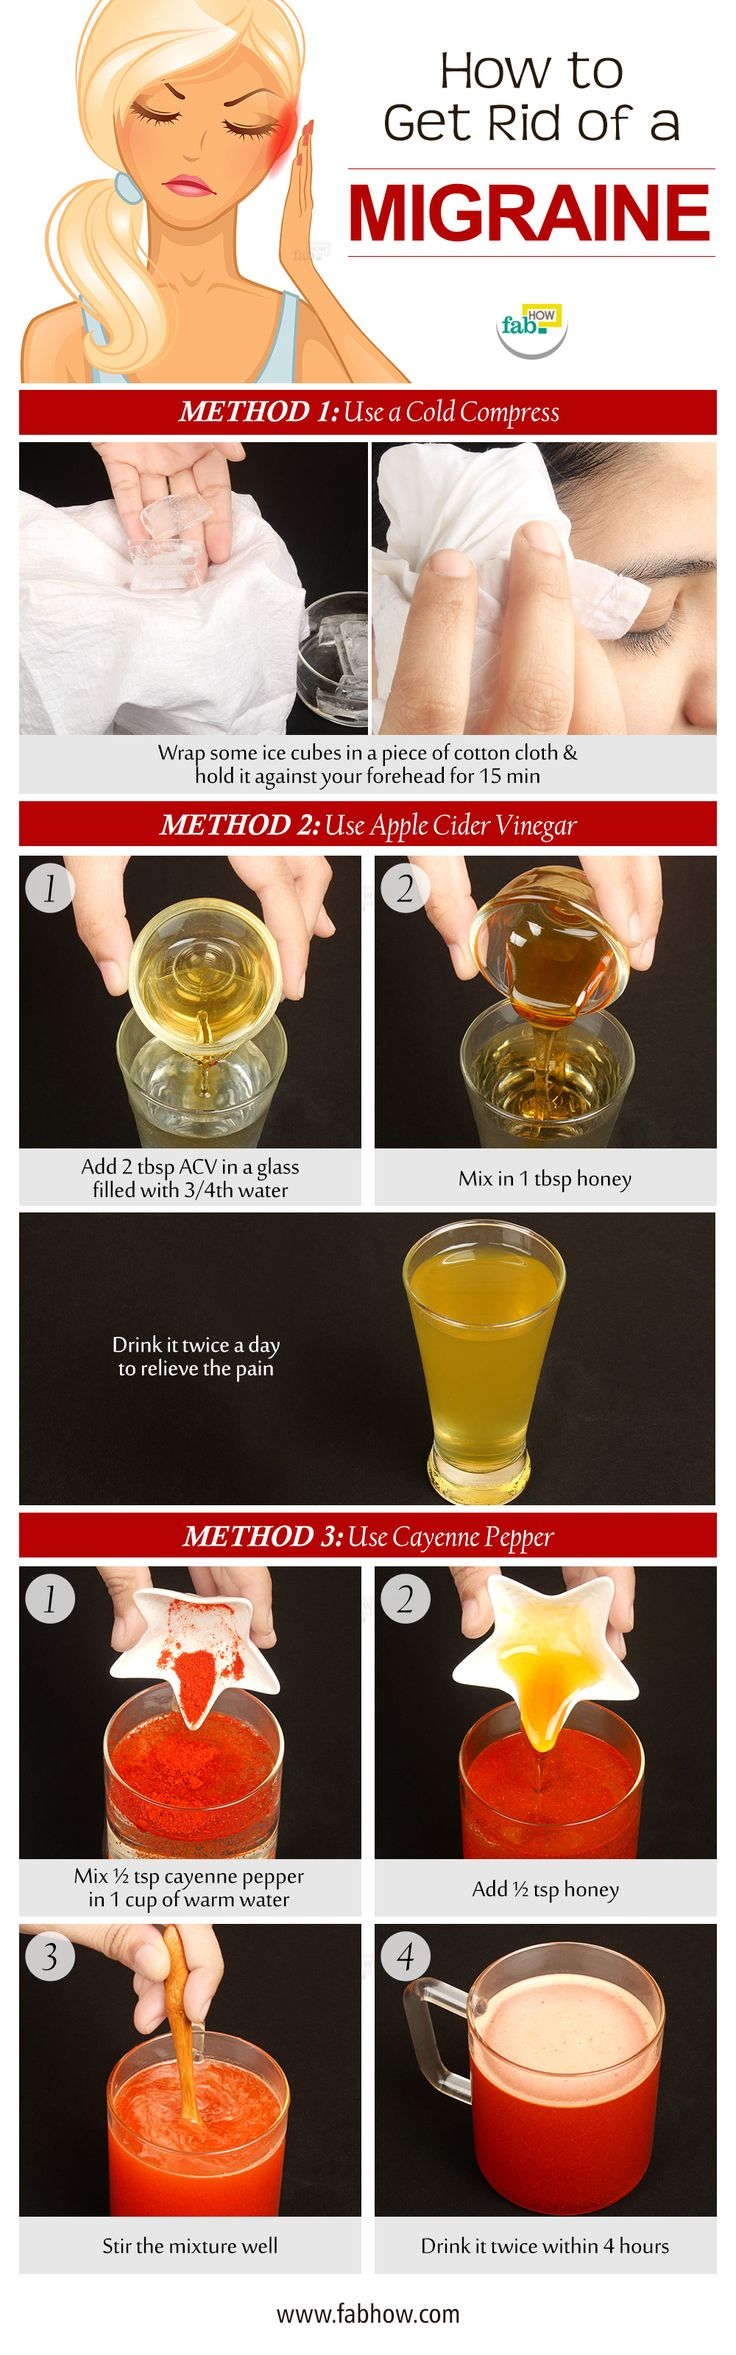 How to Get Rid of Migraine Fast without MedicationArmz